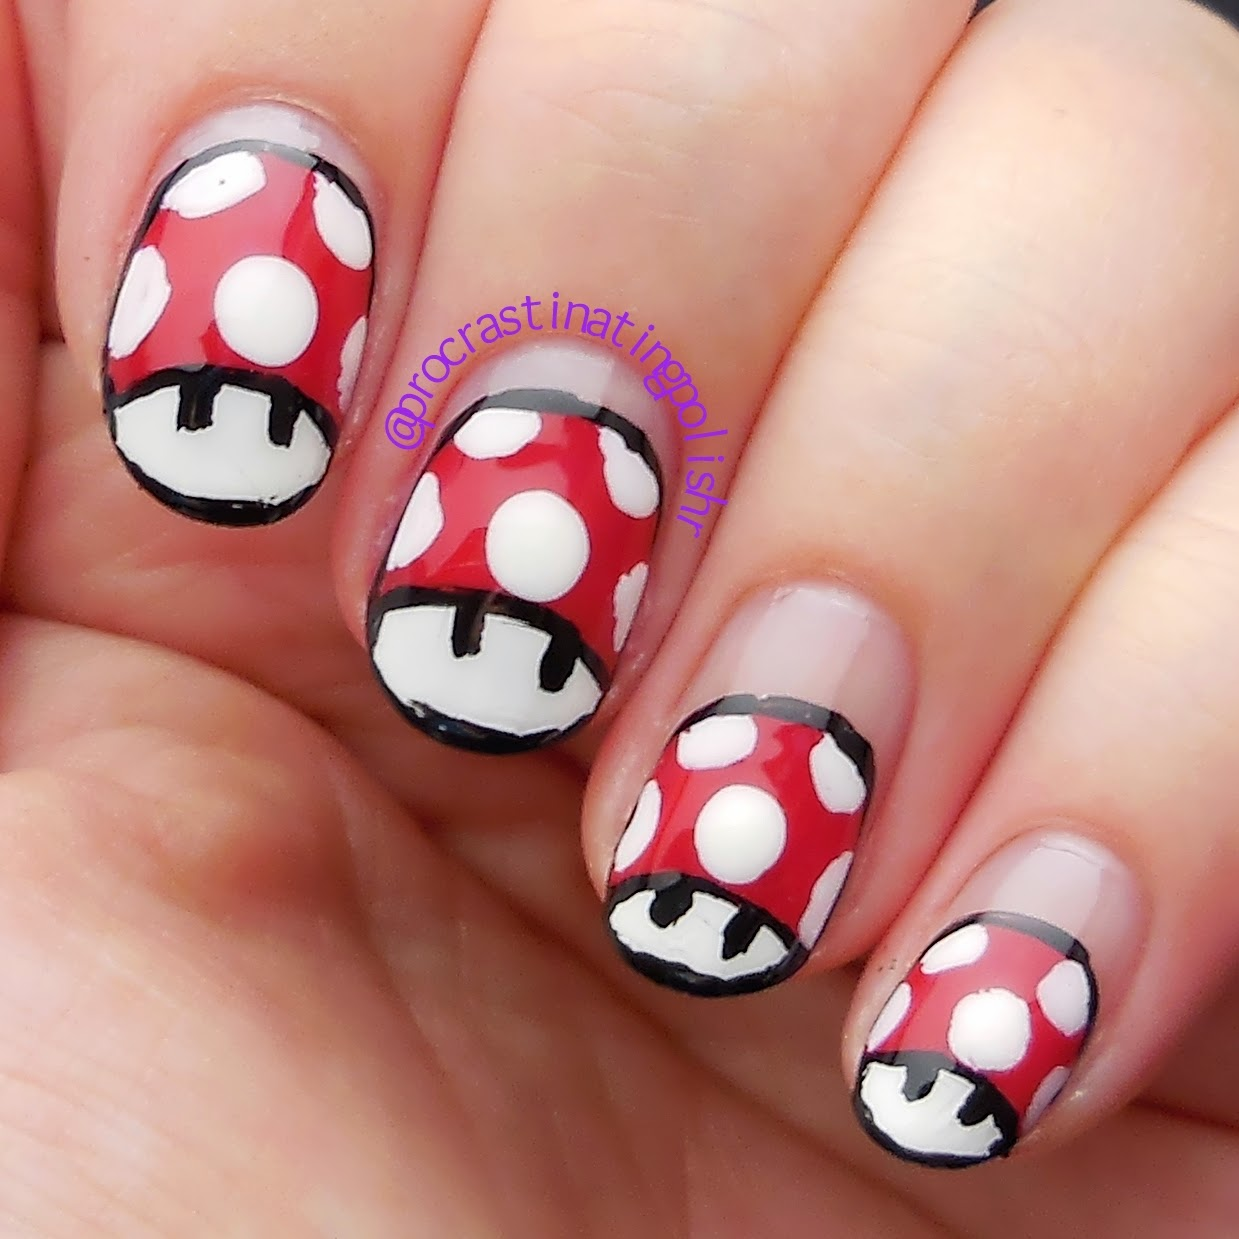 Super Mario Bros 3 nail art - Super Mushrooms 31DC2014